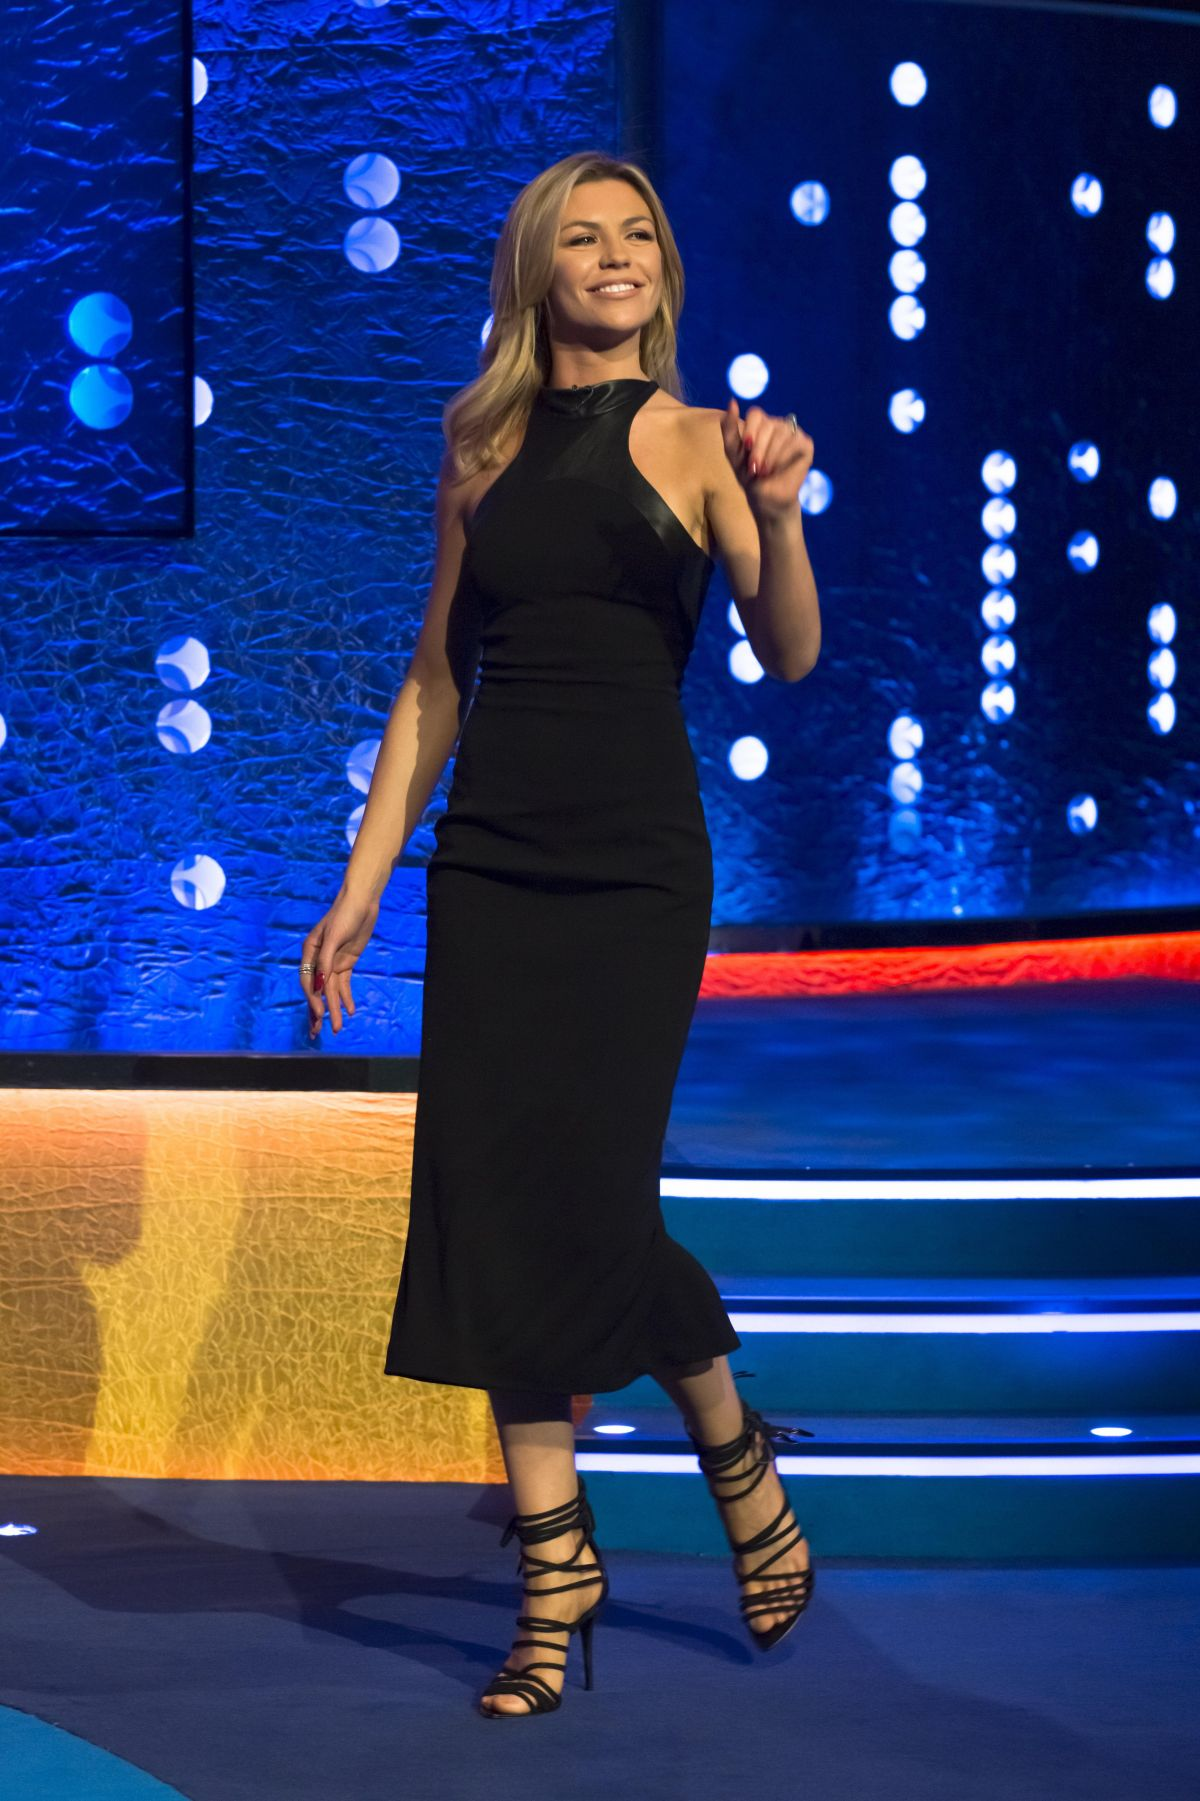 ABIGAIL ABBEY CLANCY at The Jonathan Ross Show in London